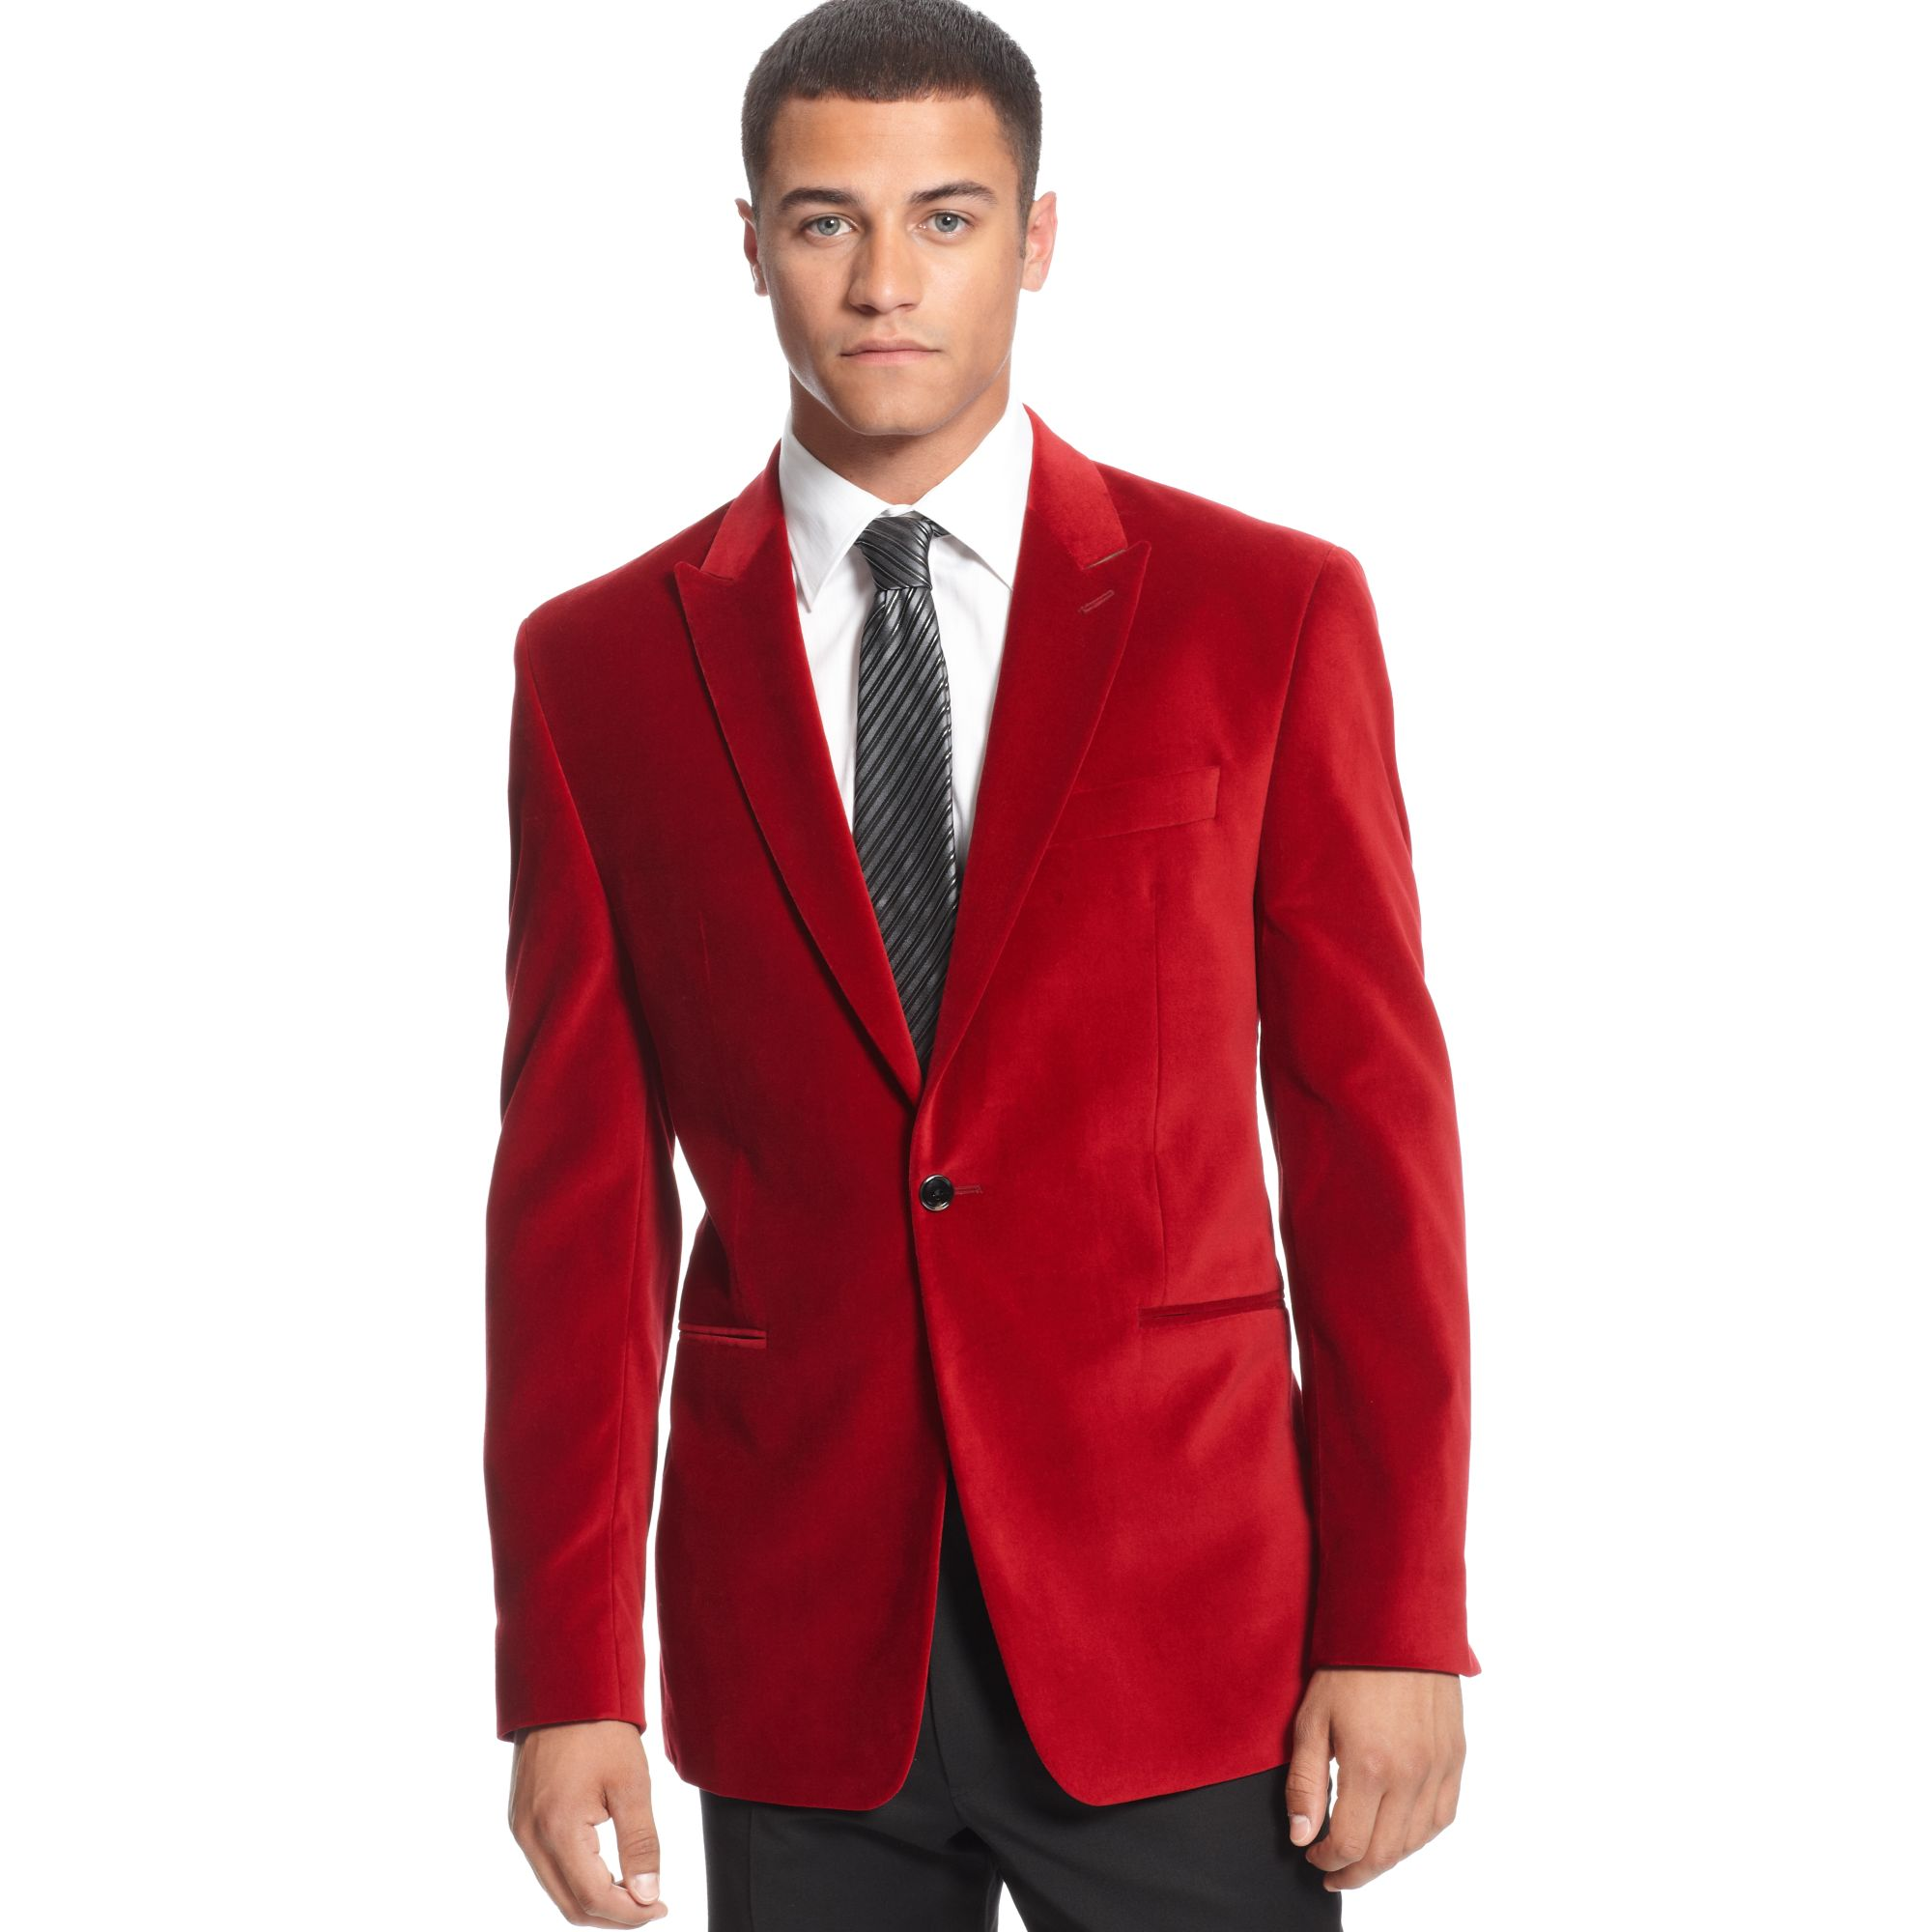 Latest Coat Pant Designs Burgundy Men Suit Slim Fit Wine Red Suits Jacket Pants 2 Piece Groom Wedding Suit for Men Tuxedo Blazer. Find and save ideas about Red pants men on Pinterest. | See more ideas about Red pants for men, Maroon pants mens and Blue and white smart day dresses.